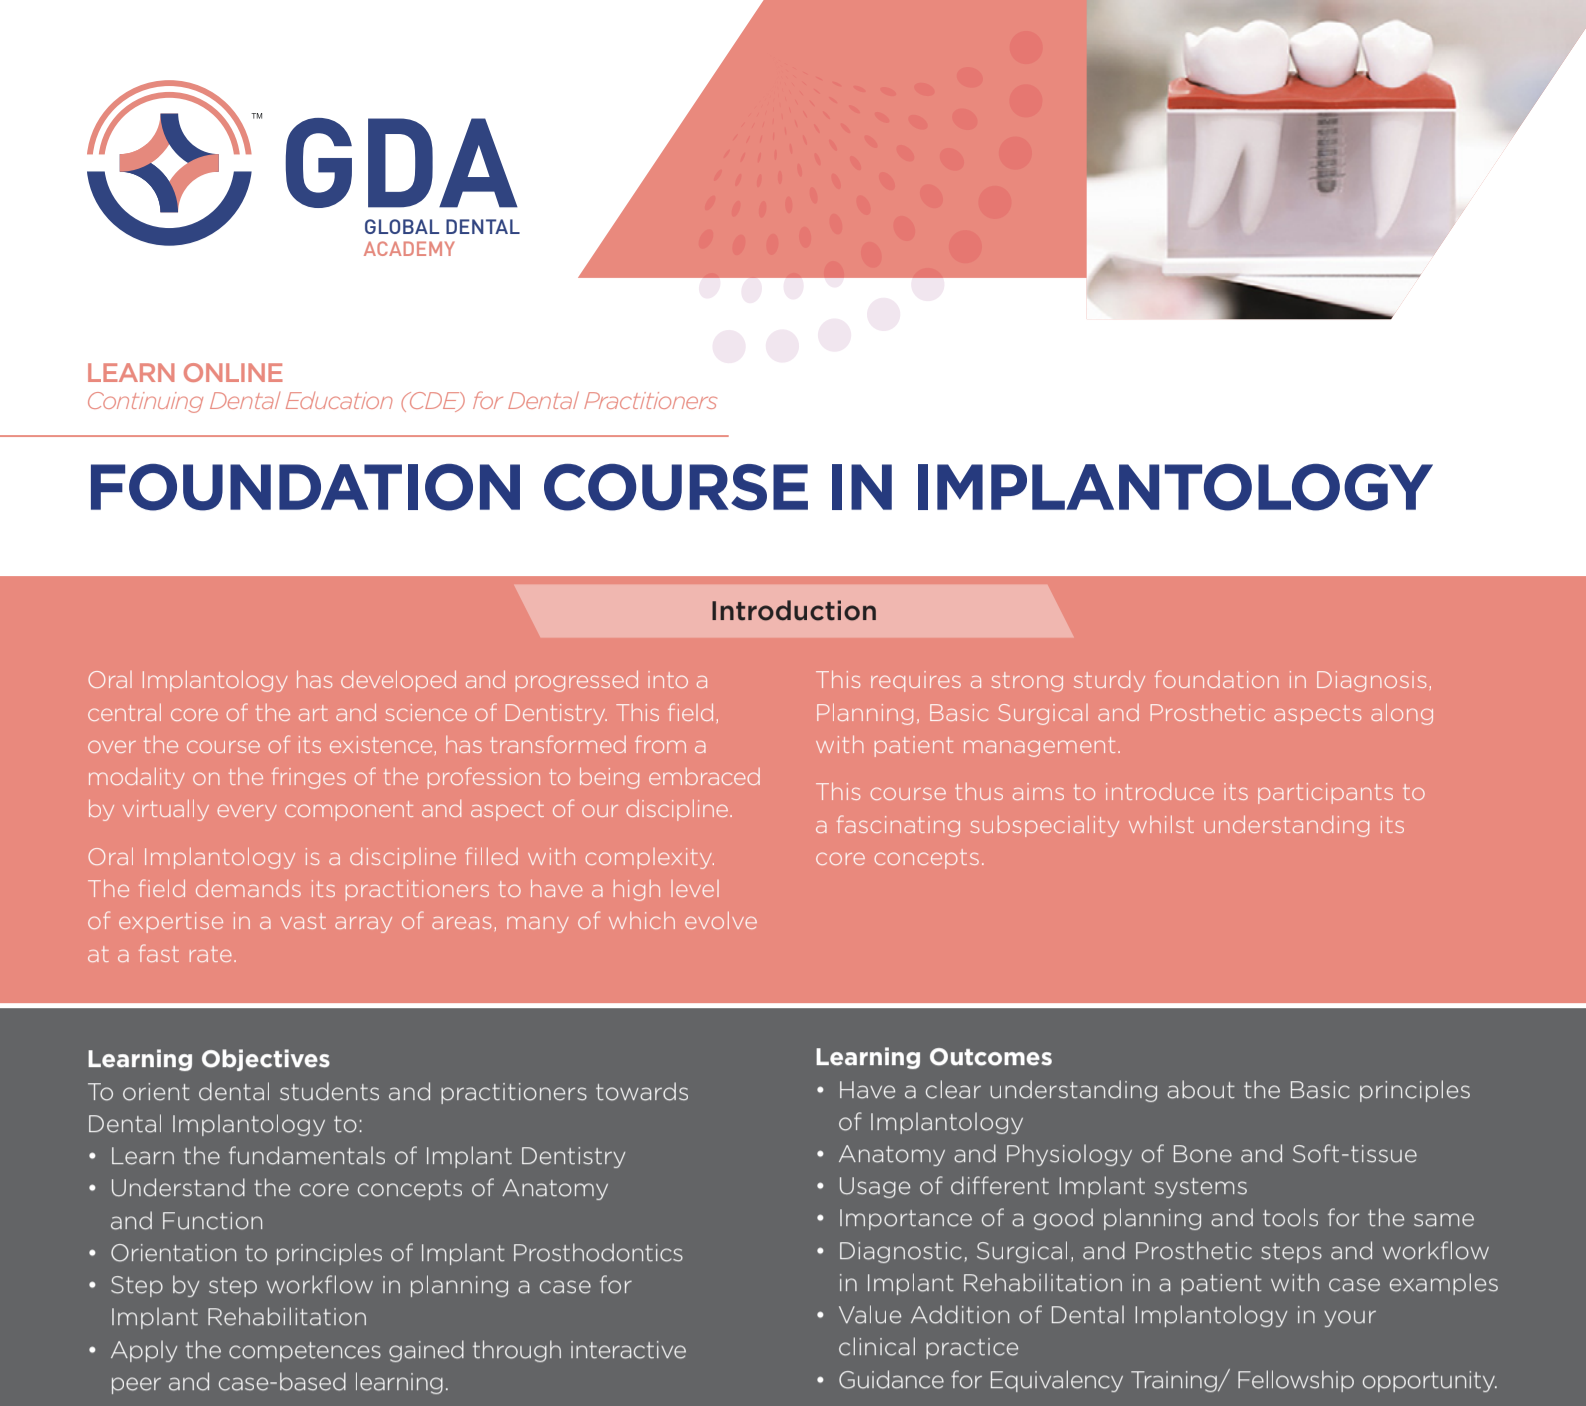 Foundation Course in Implantology by Global Dental Academy (GDA)